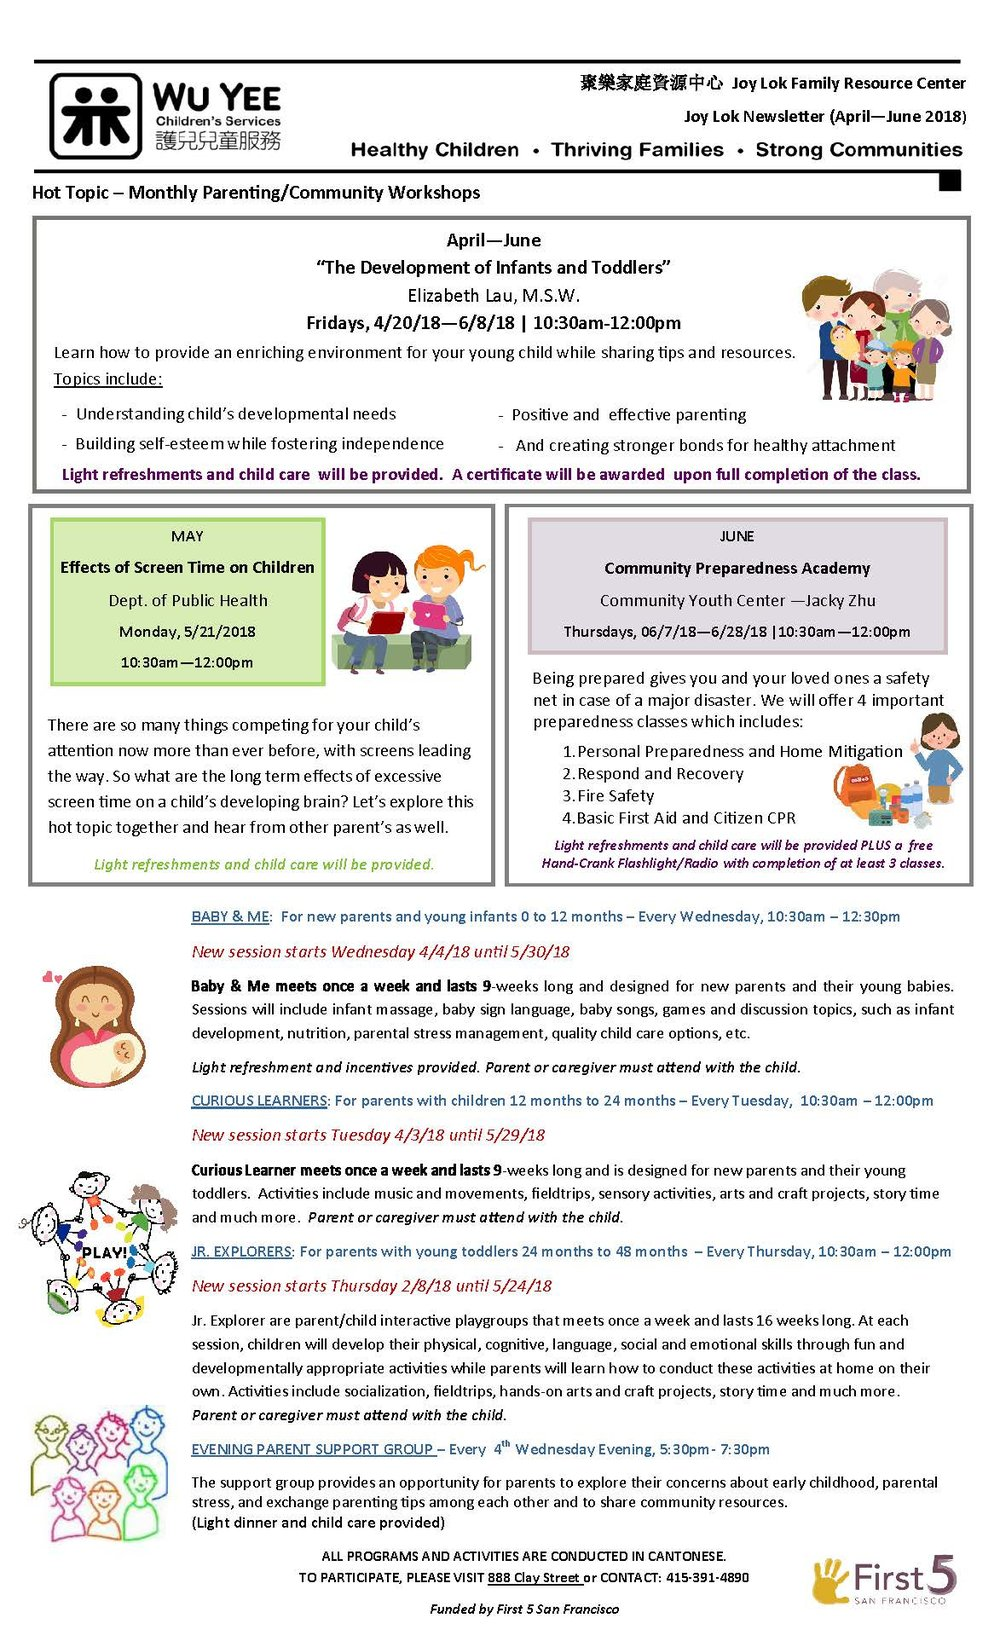 Joy Lok Frc Newsletter April June 2018 Wu Yee Children S Services